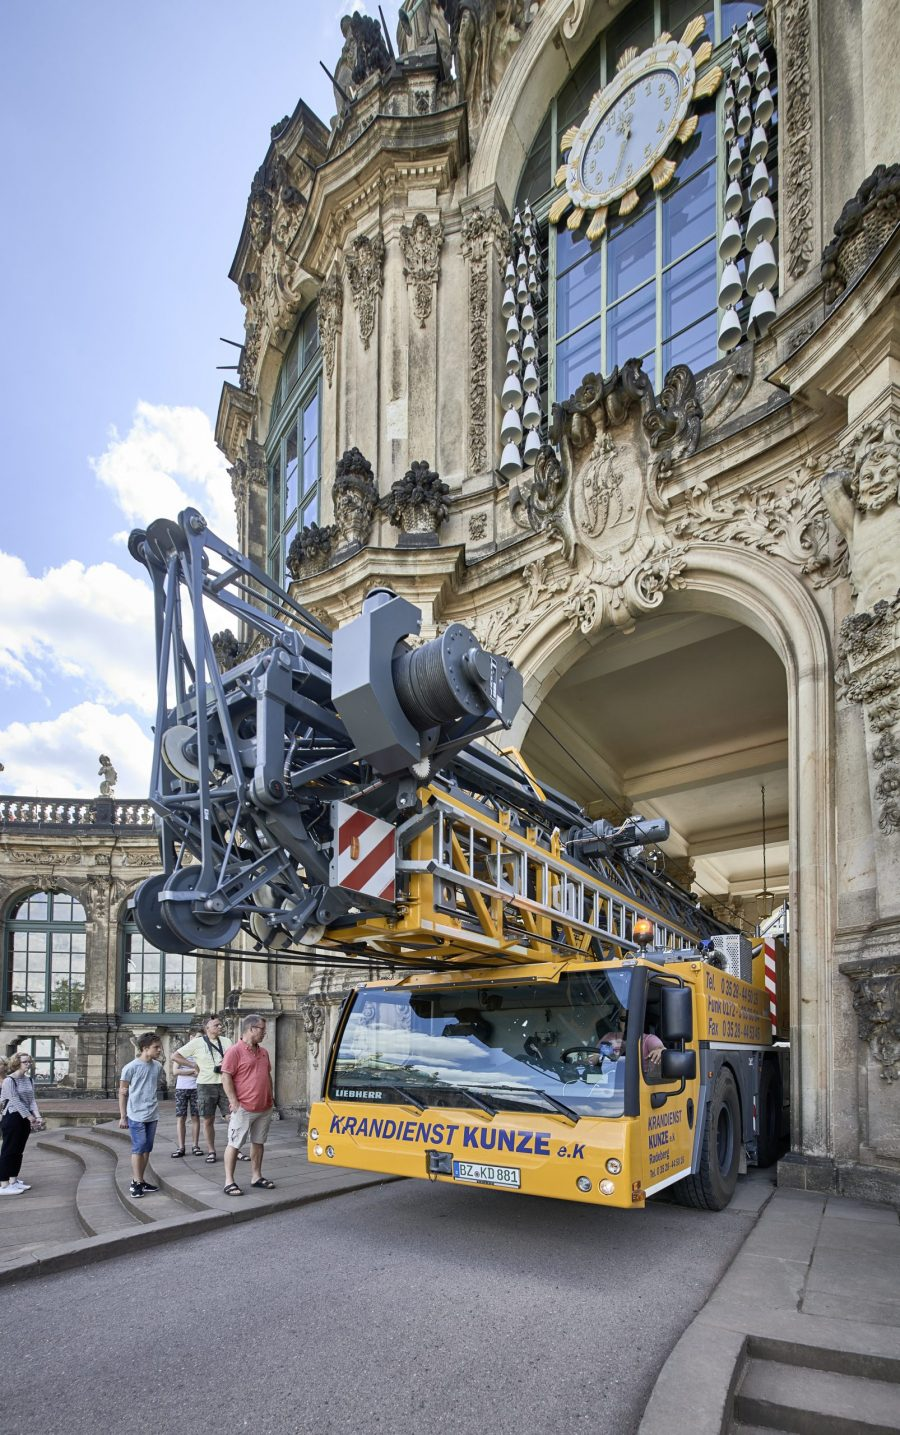 Only a few centimetres separate the Liebherr MK 88 Plus from the building on arrival.